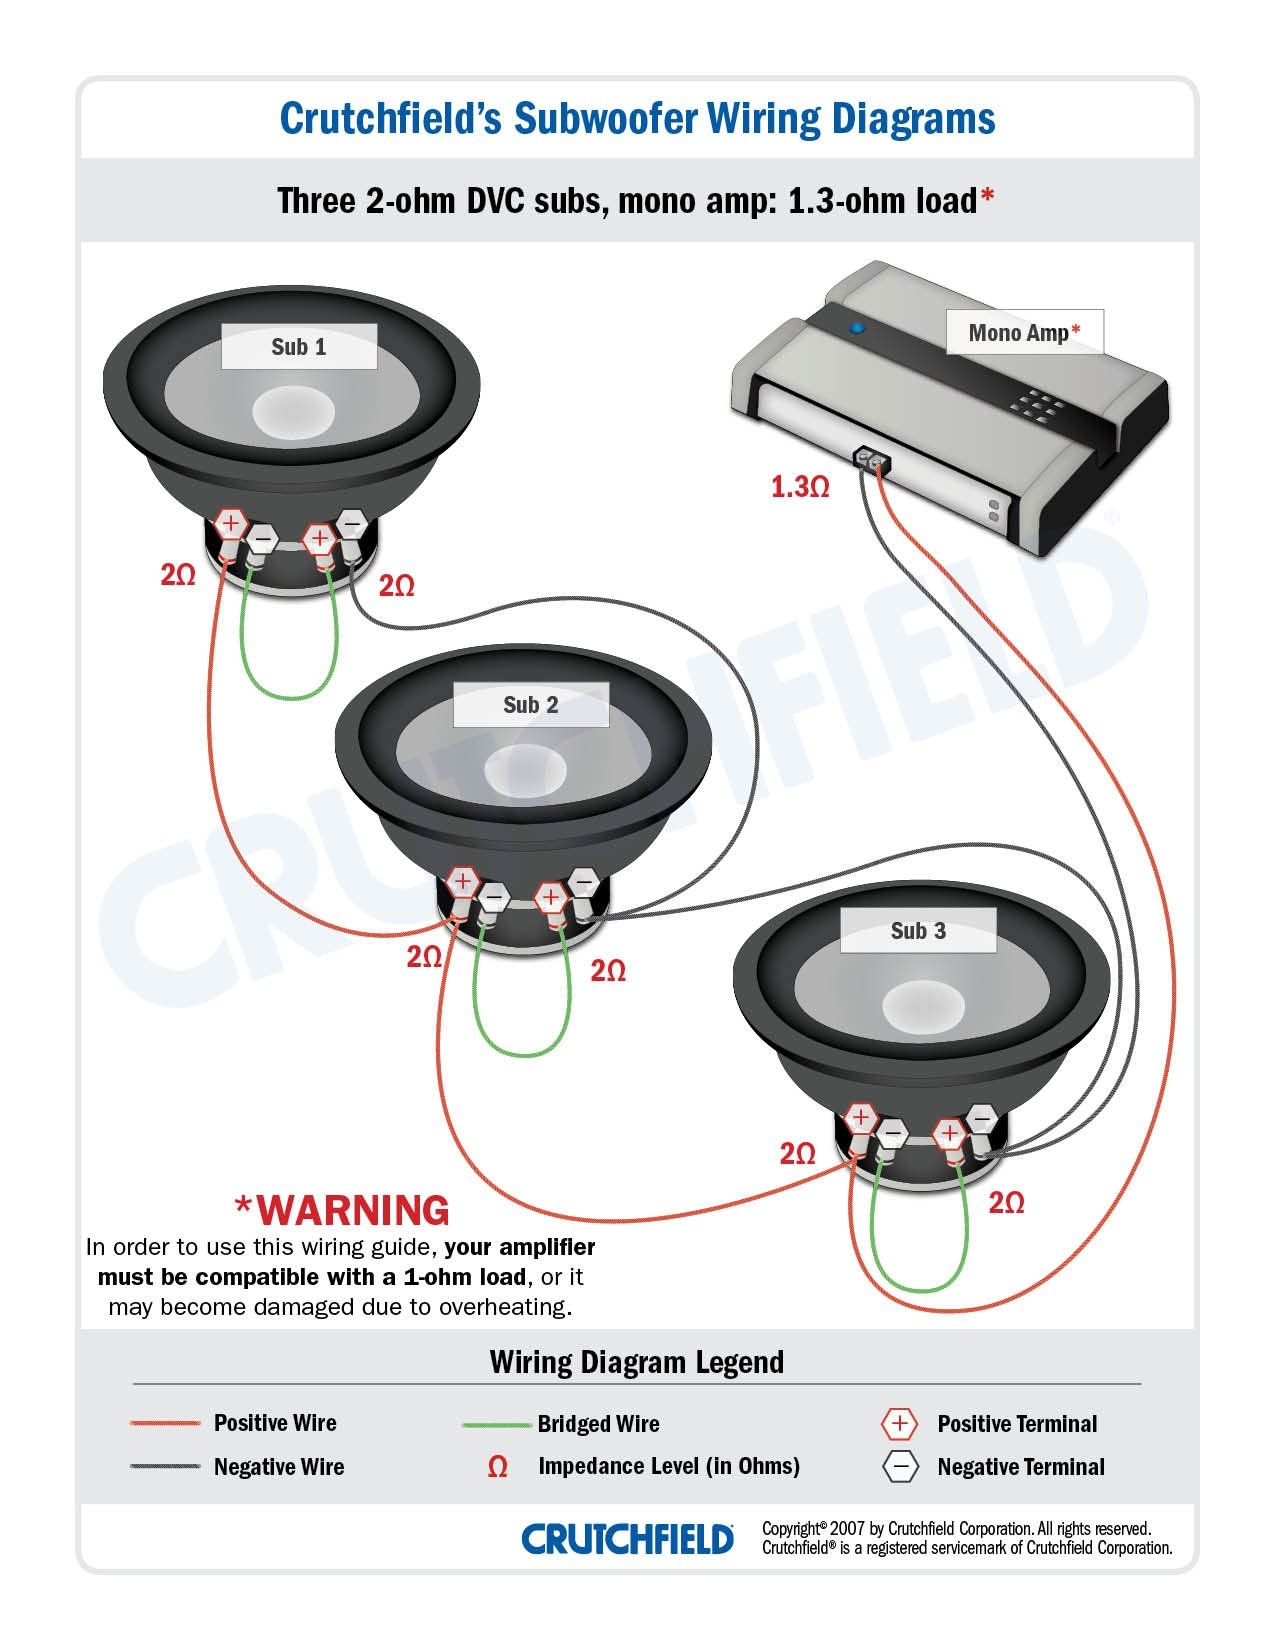 3 DVC 2 ohm mono low imp how to match subwoofers and amplifiers boston subsat 6 wiring diagram at gsmx.co